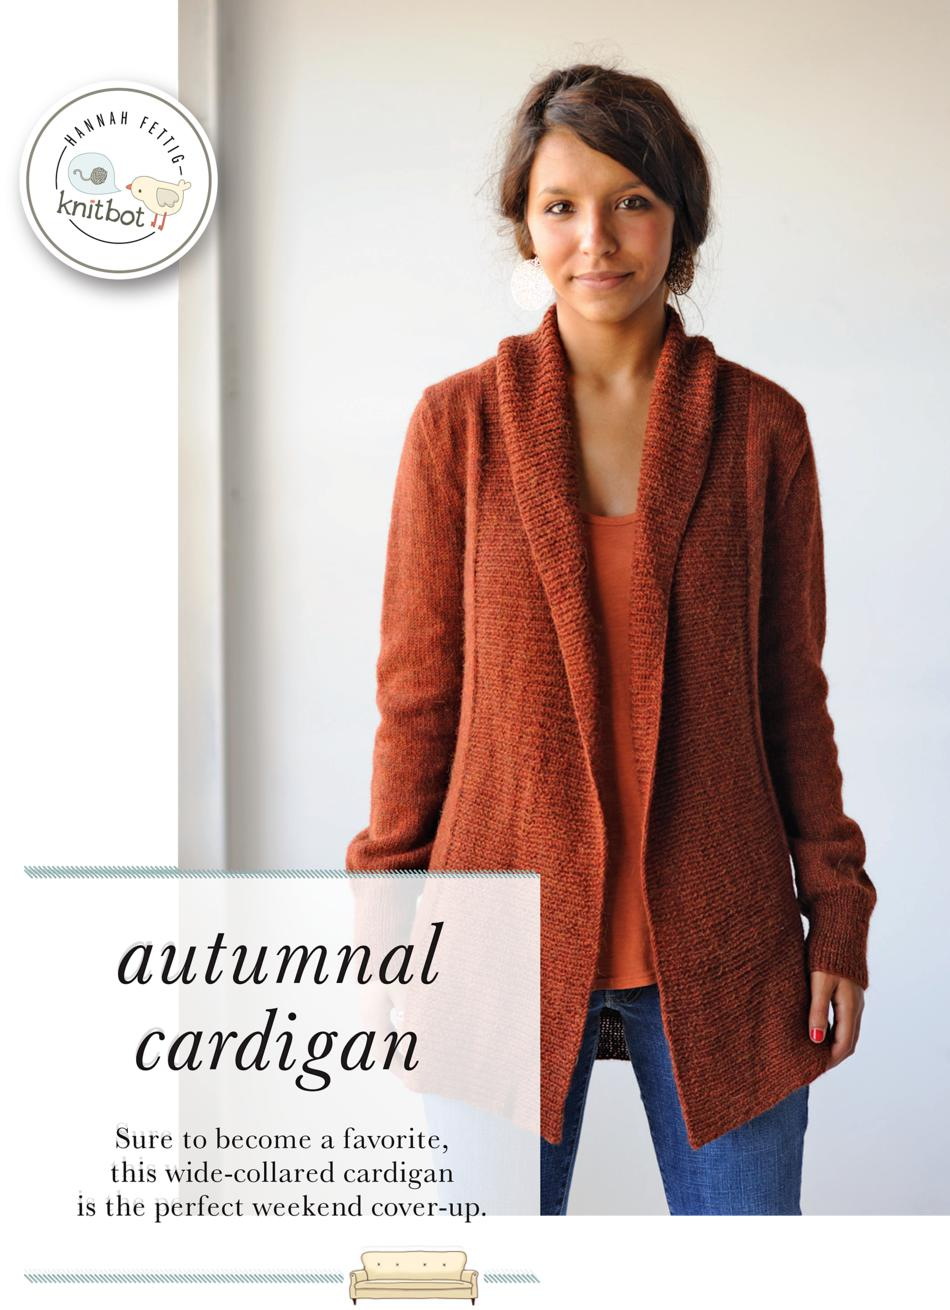 Knitbot Autumnal Cardigan, Knitting Pattern - Halcyon Yarn